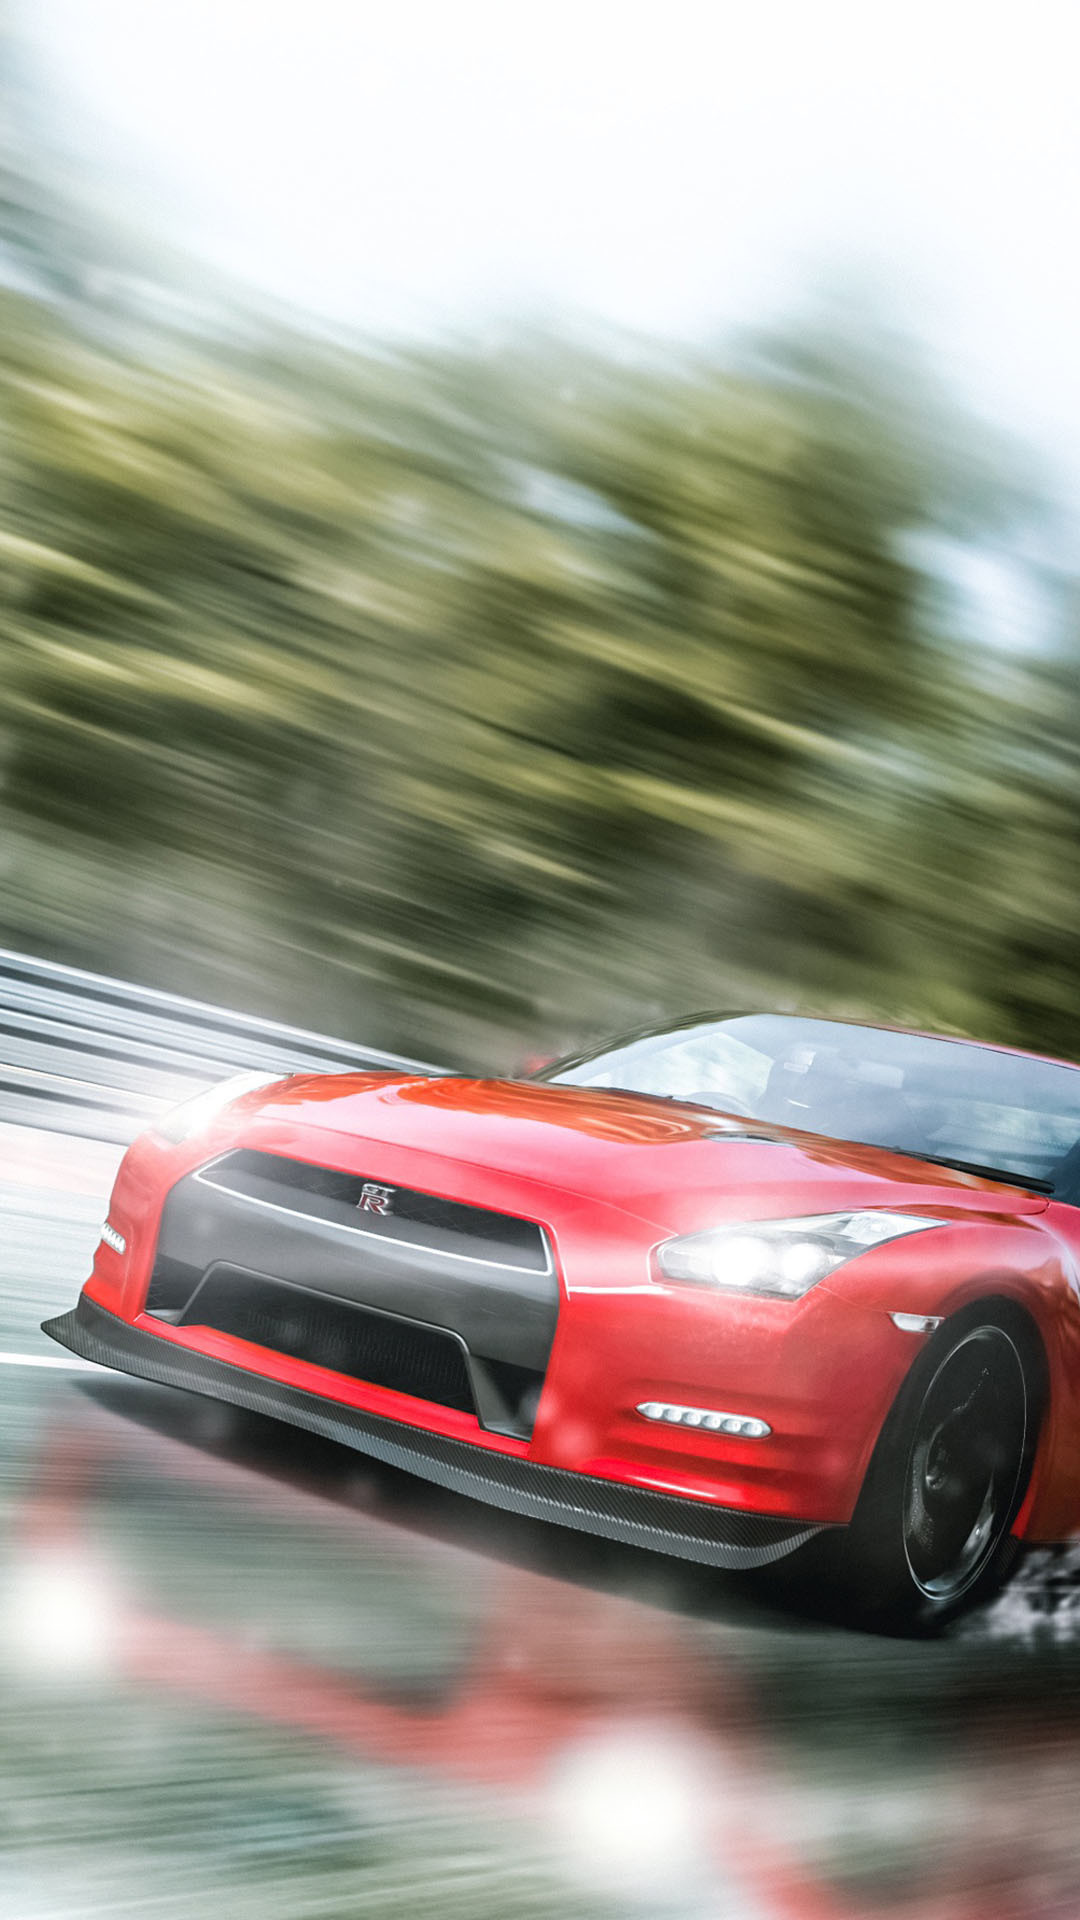 Nissan Gtr Iphone 6 Wallpaper 79 Images